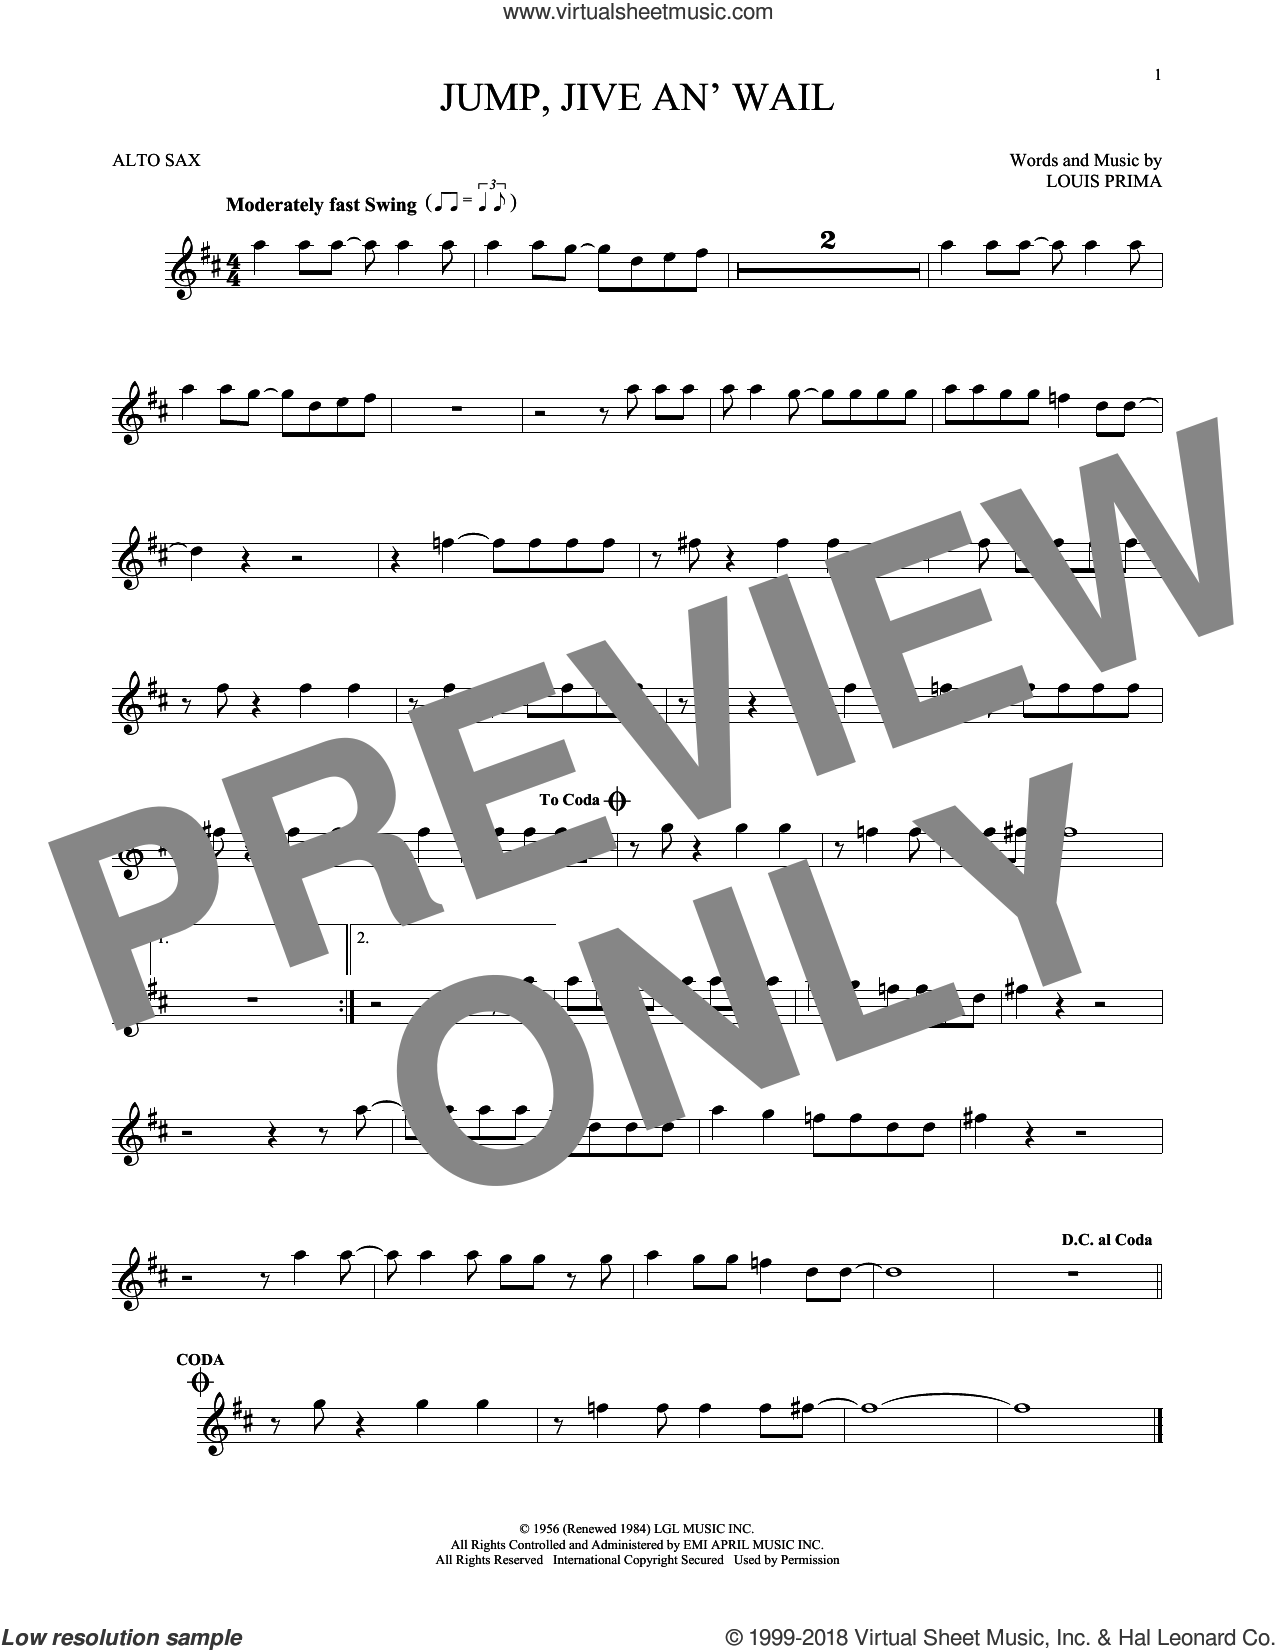 Jump, Jive An' Wail sheet music for alto saxophone solo by Louis Prima and Brian Setzer, intermediate skill level